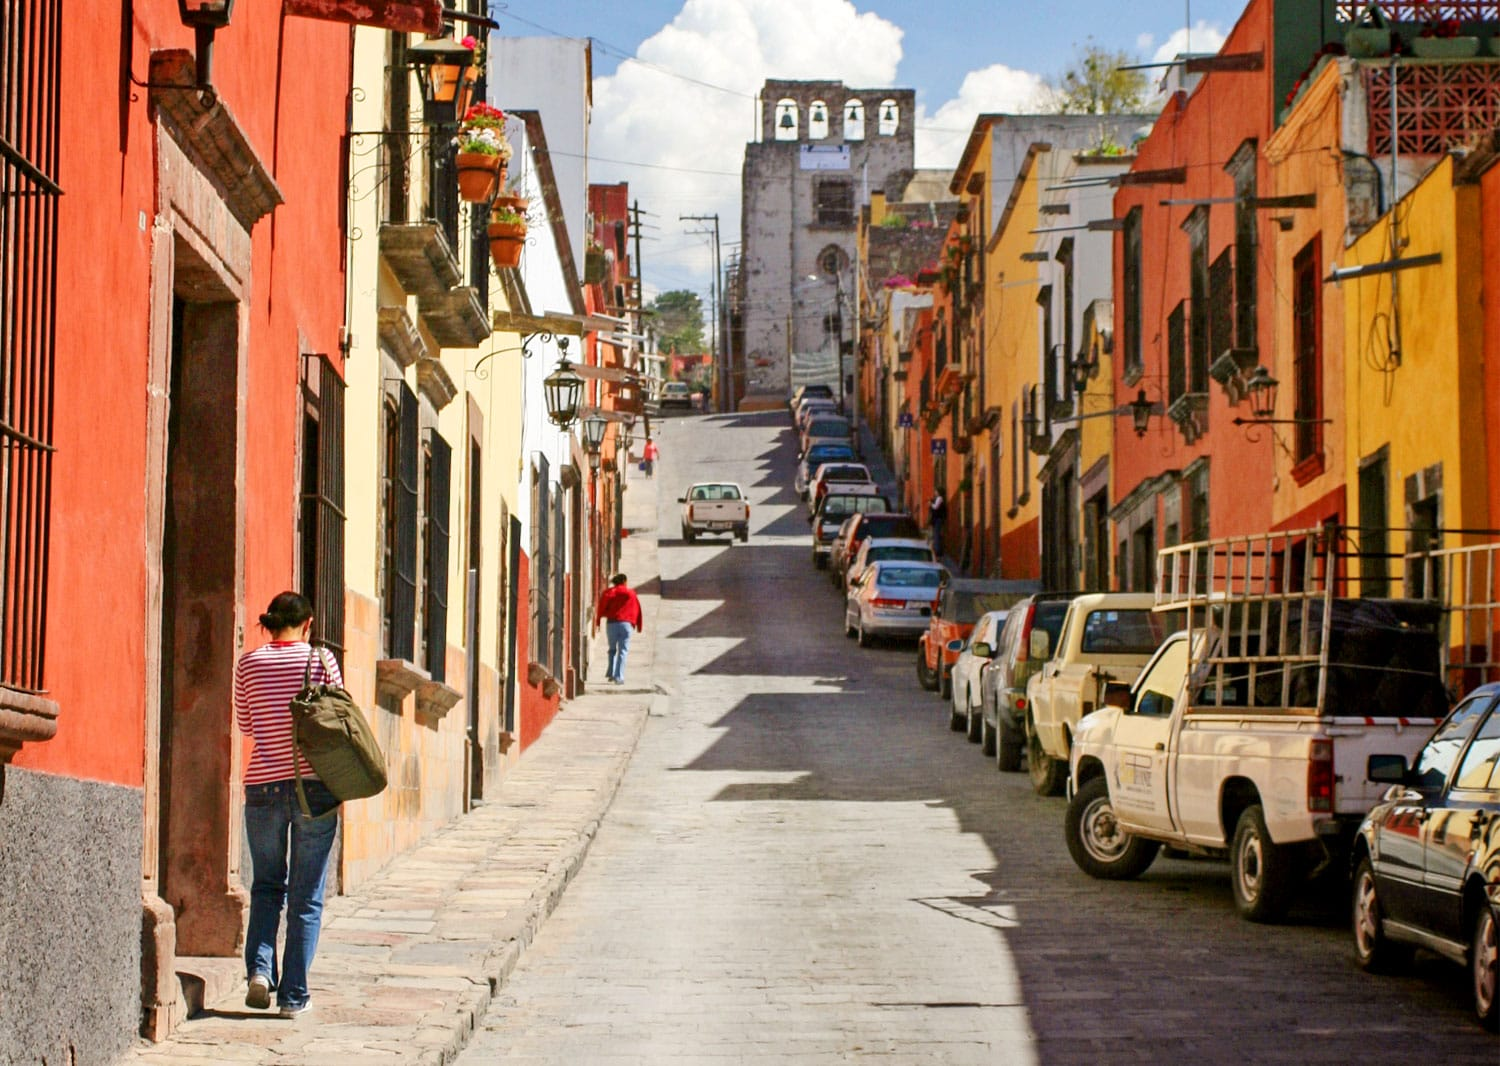 Street in San Miguel de Allendein San Miguel de Allende, Mexico. This town has well-preserved historic center with buildings from the 17th and 18th.